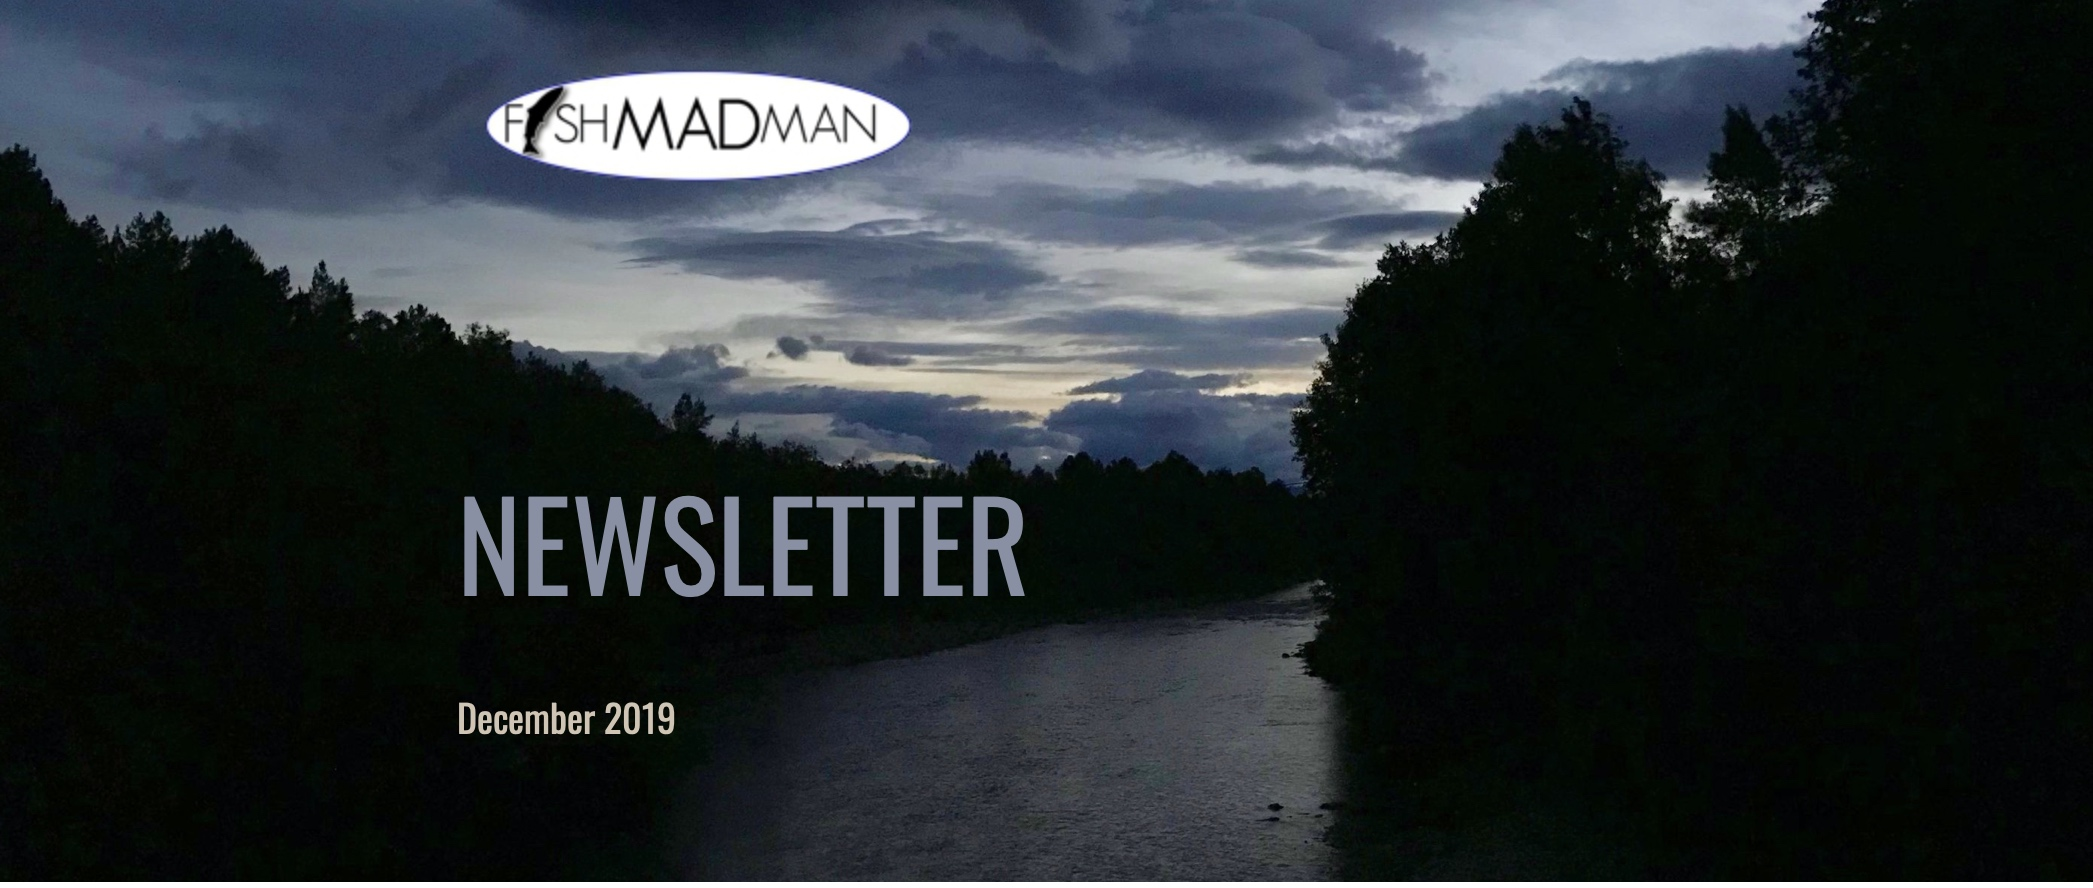 Newsletter Fishmadman December 2019